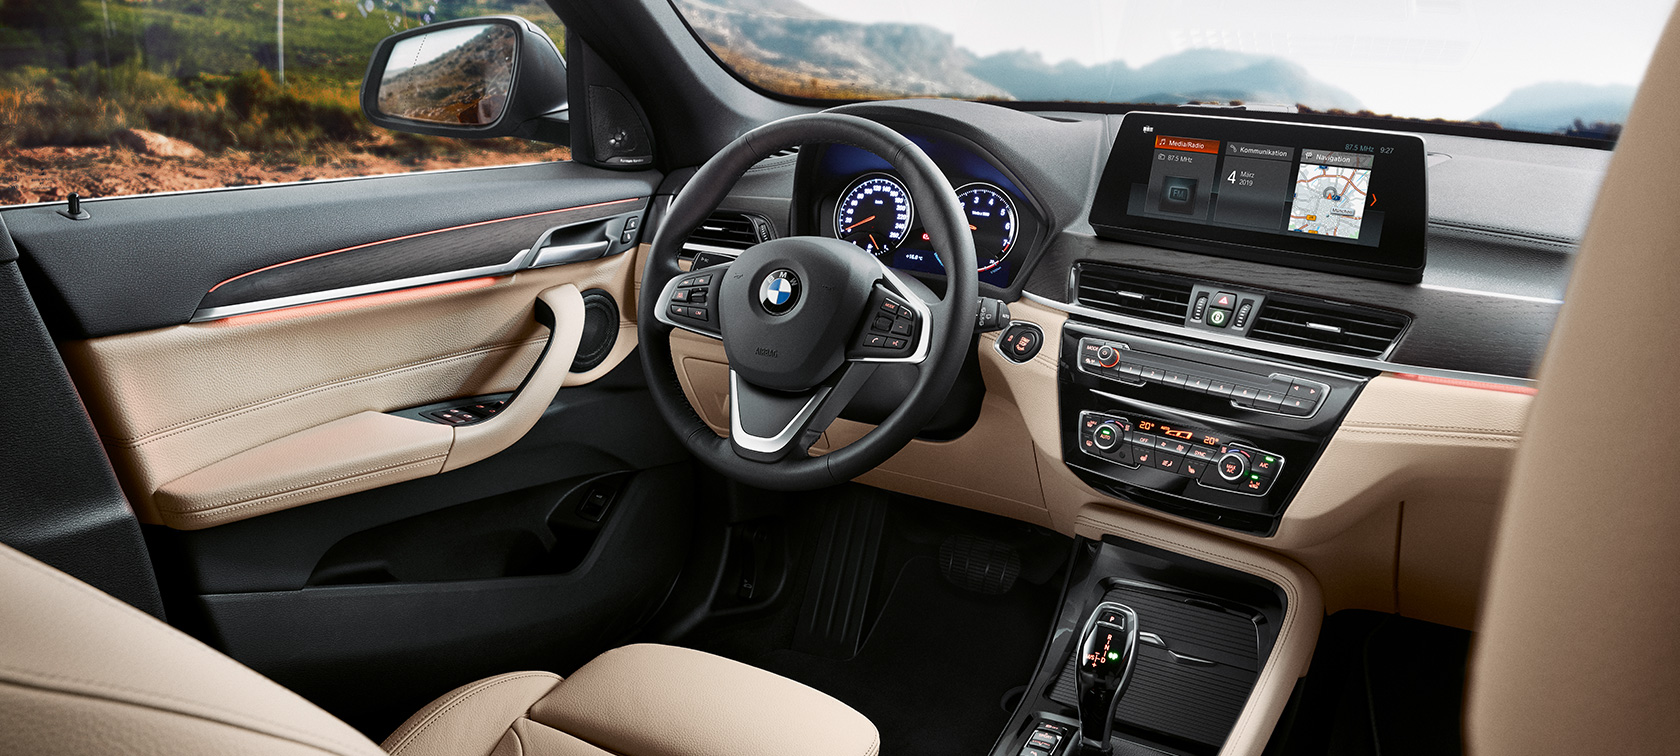 BMW X1: details and specs | bmw.lc